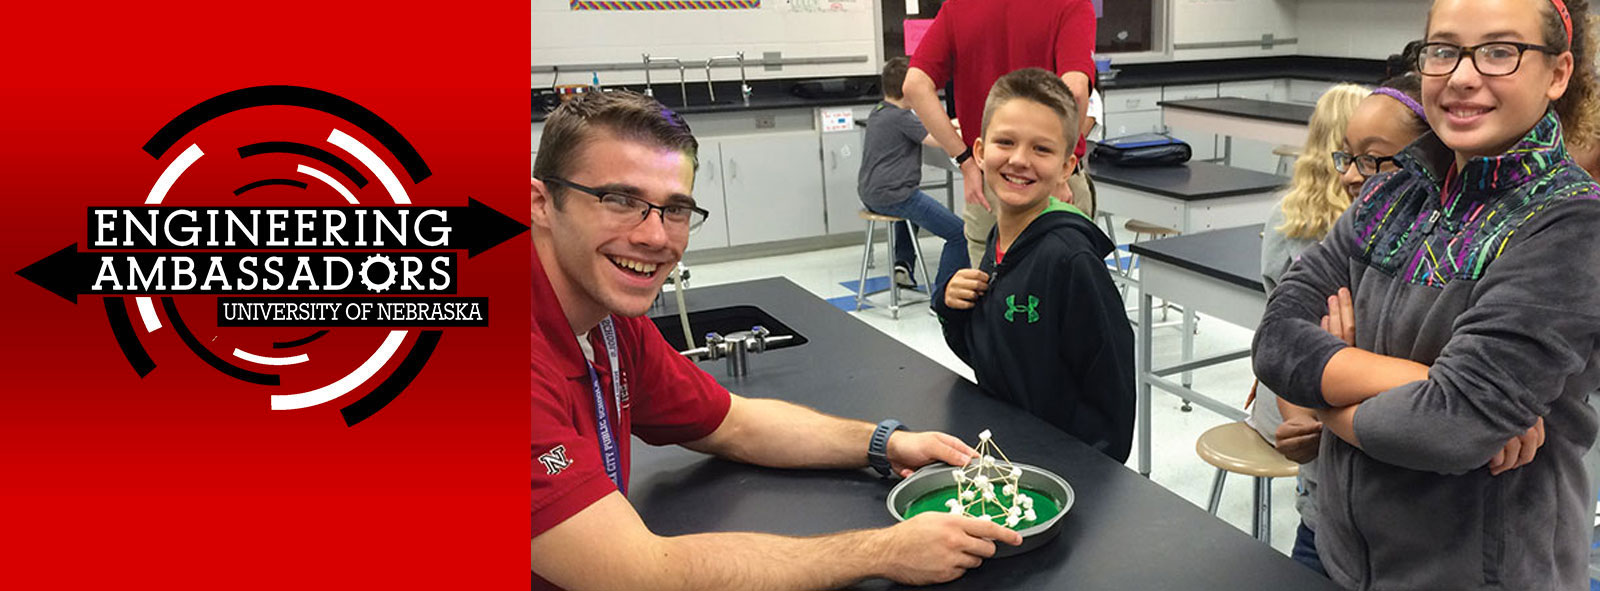 Engineering Ambassador and students work with earthquake structures.